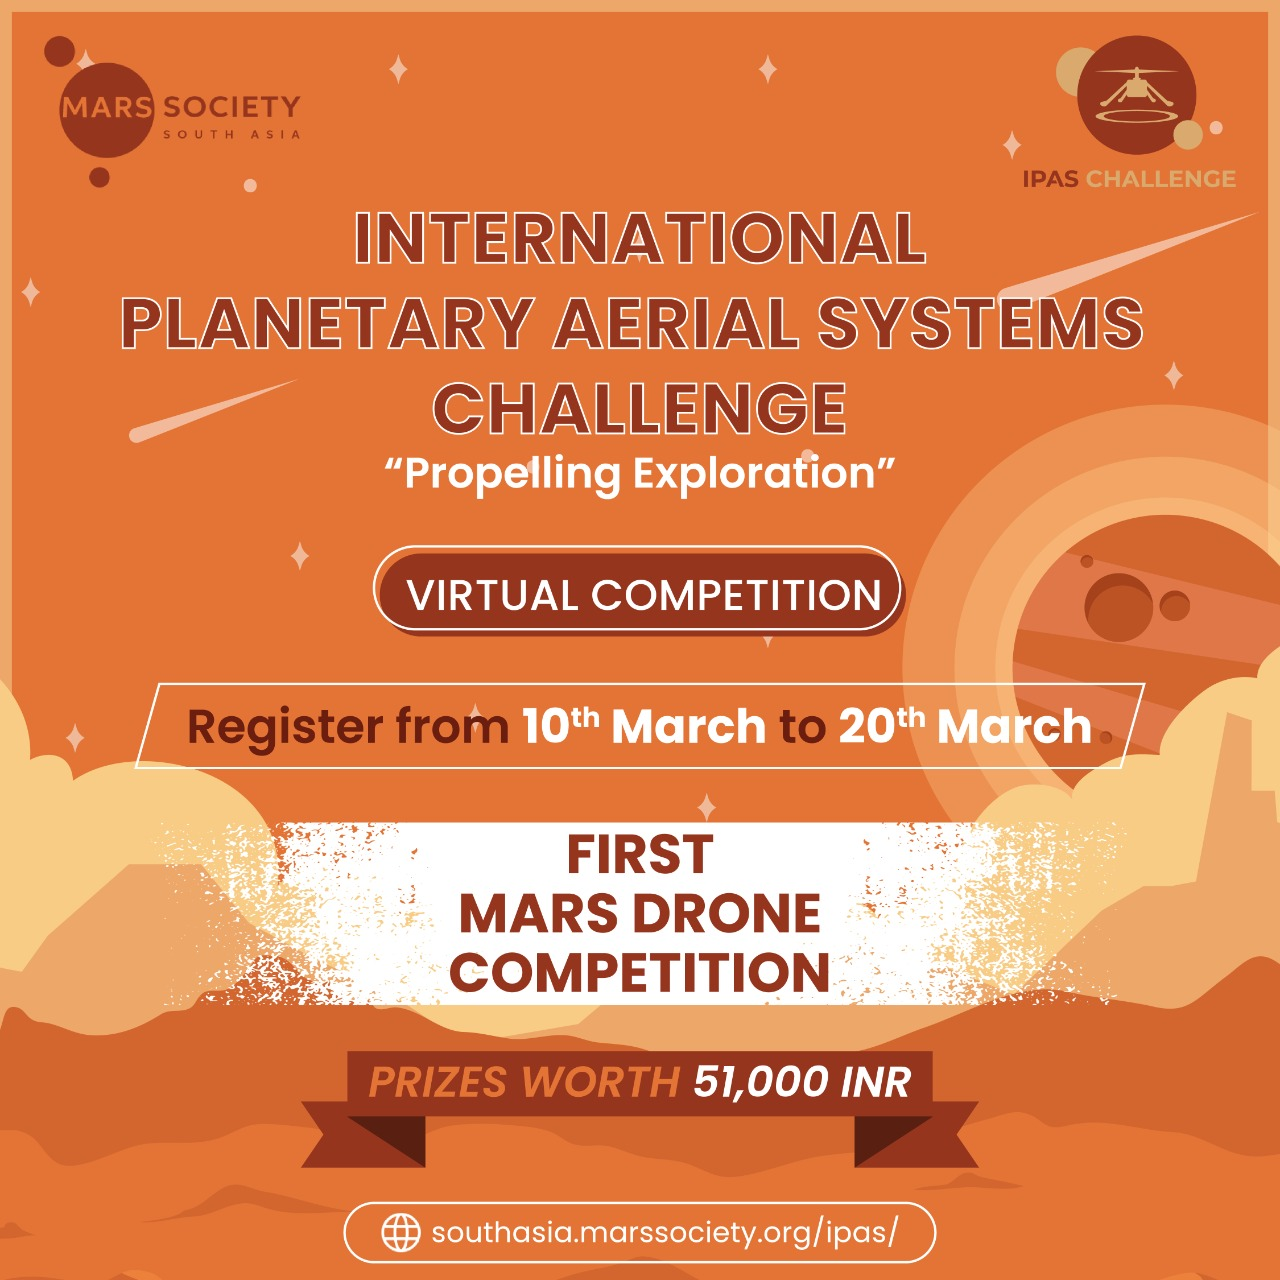 MSSA Announces International Planetary Aerial Systems (IPAS) Challenge